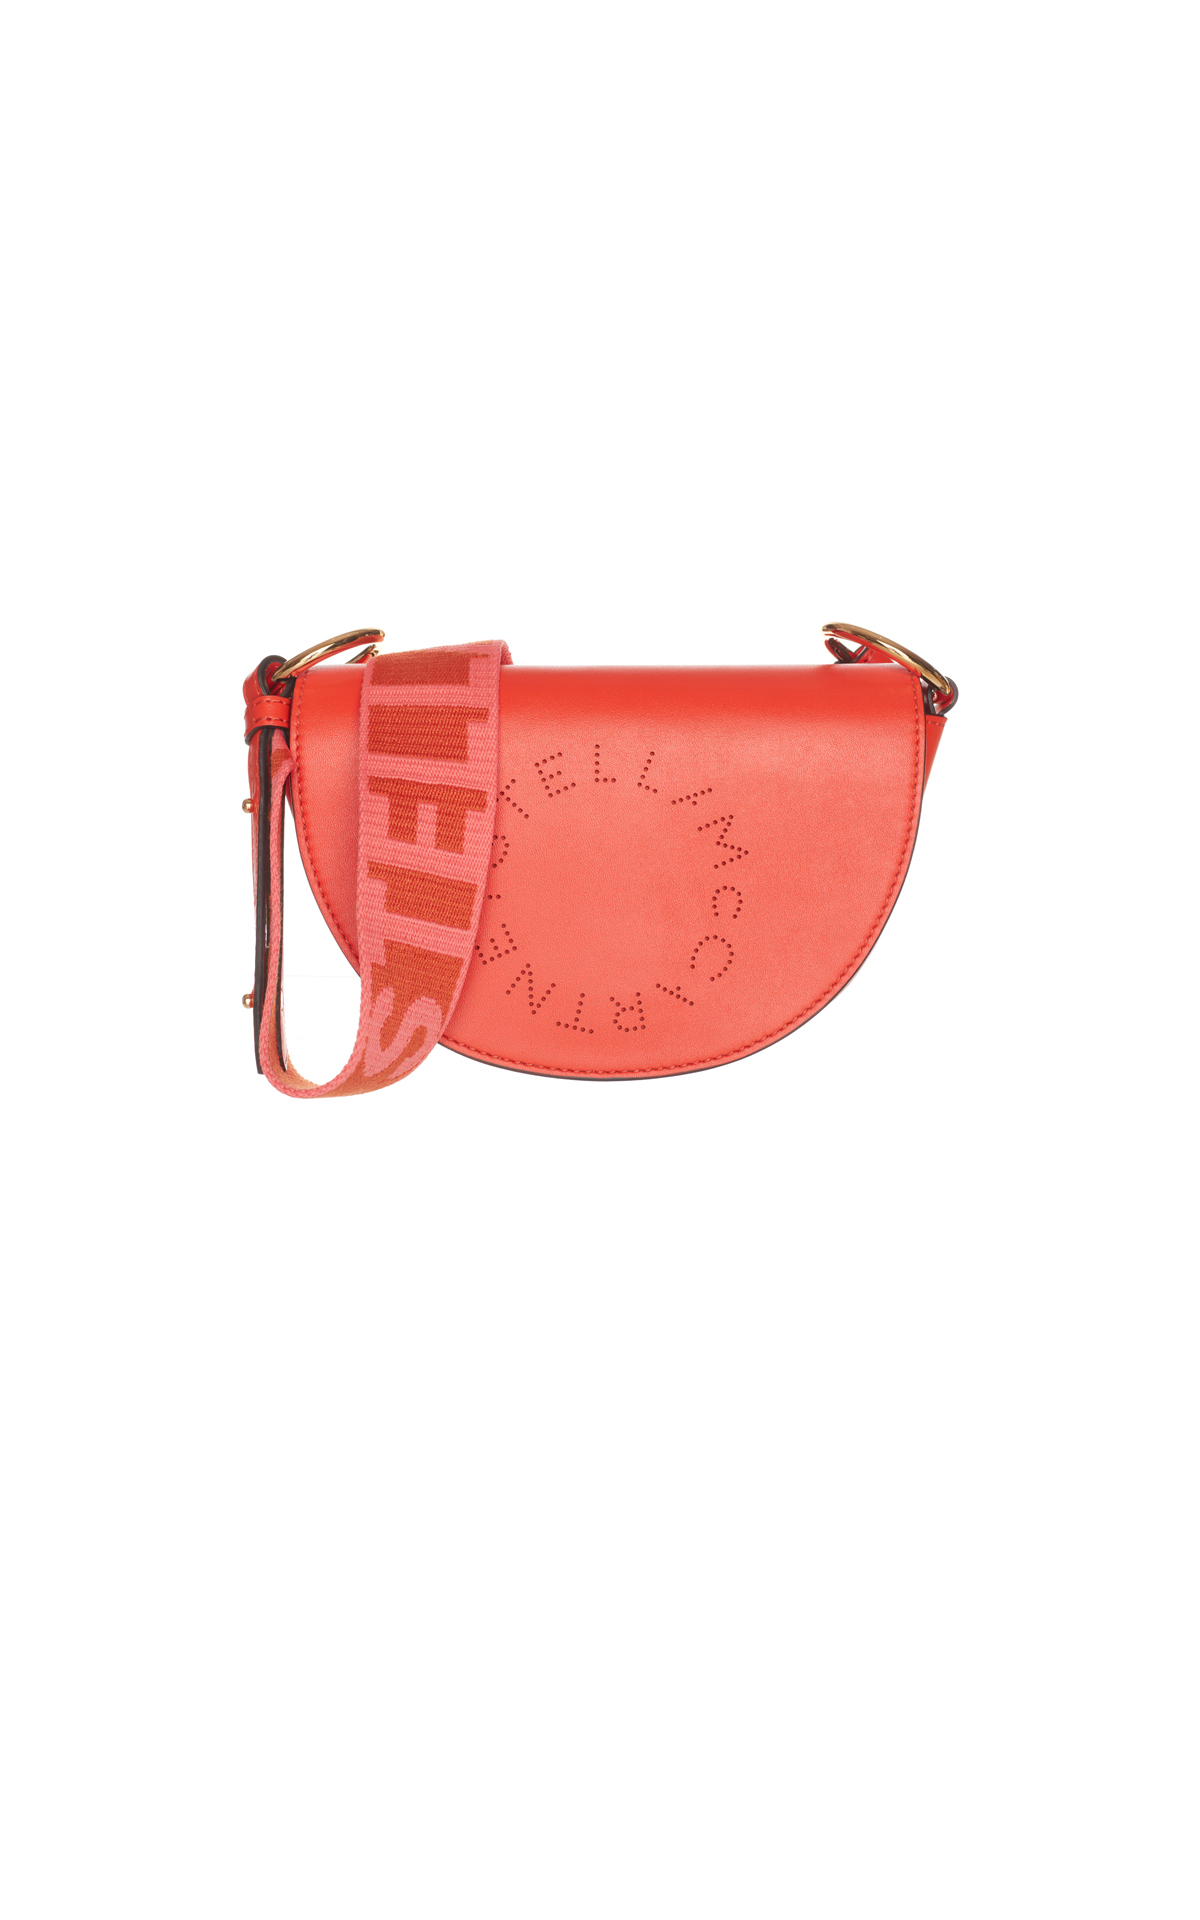 Stella McCartney Flap shoulder bag eco soft from Bicester Village